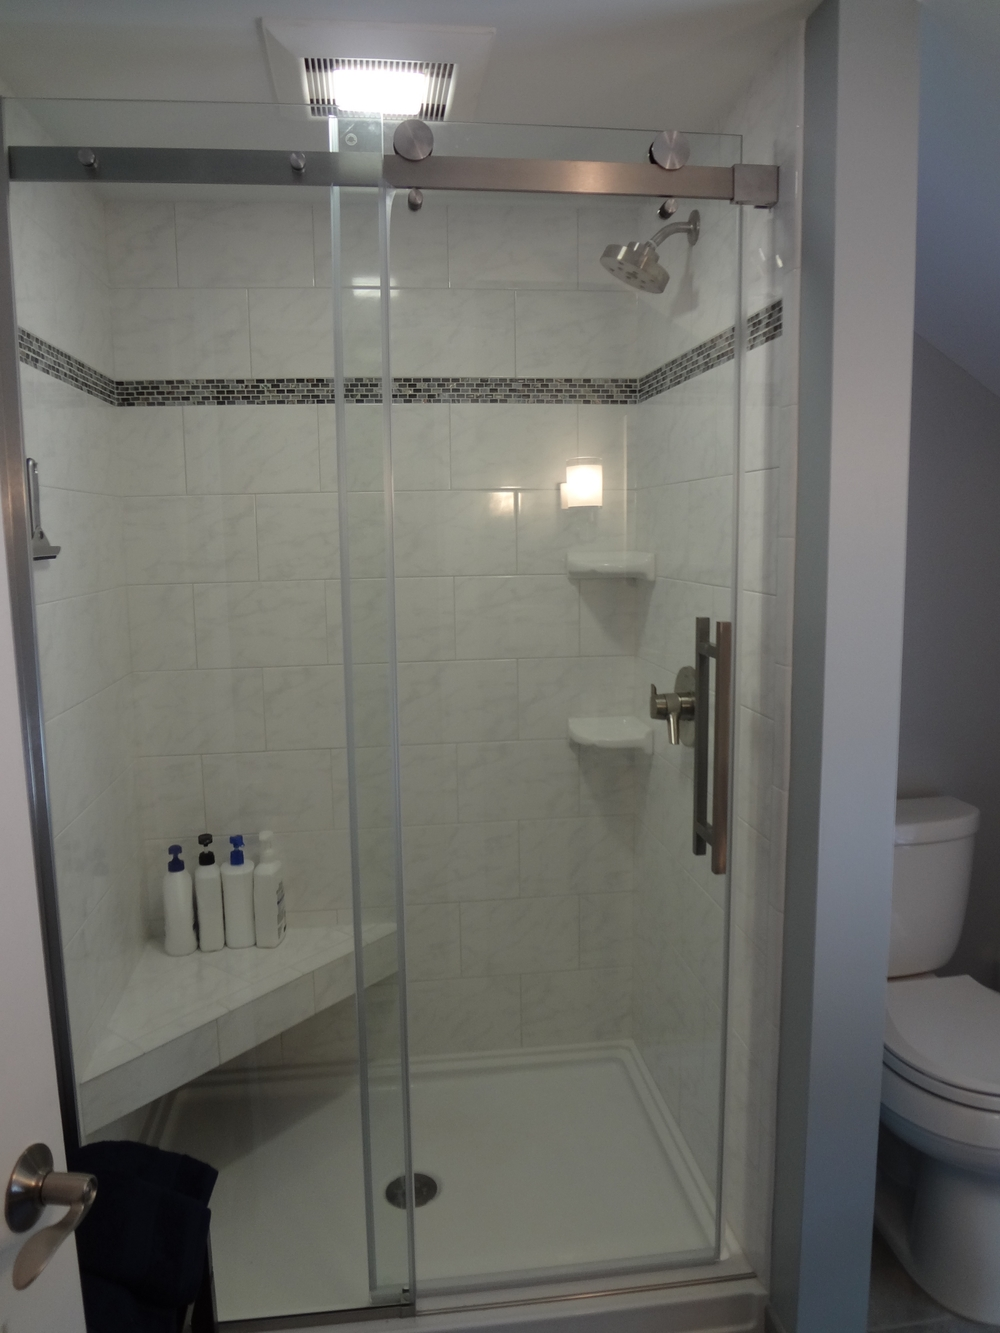 Beautiful tiled shower that has been expanded to allow for more room.